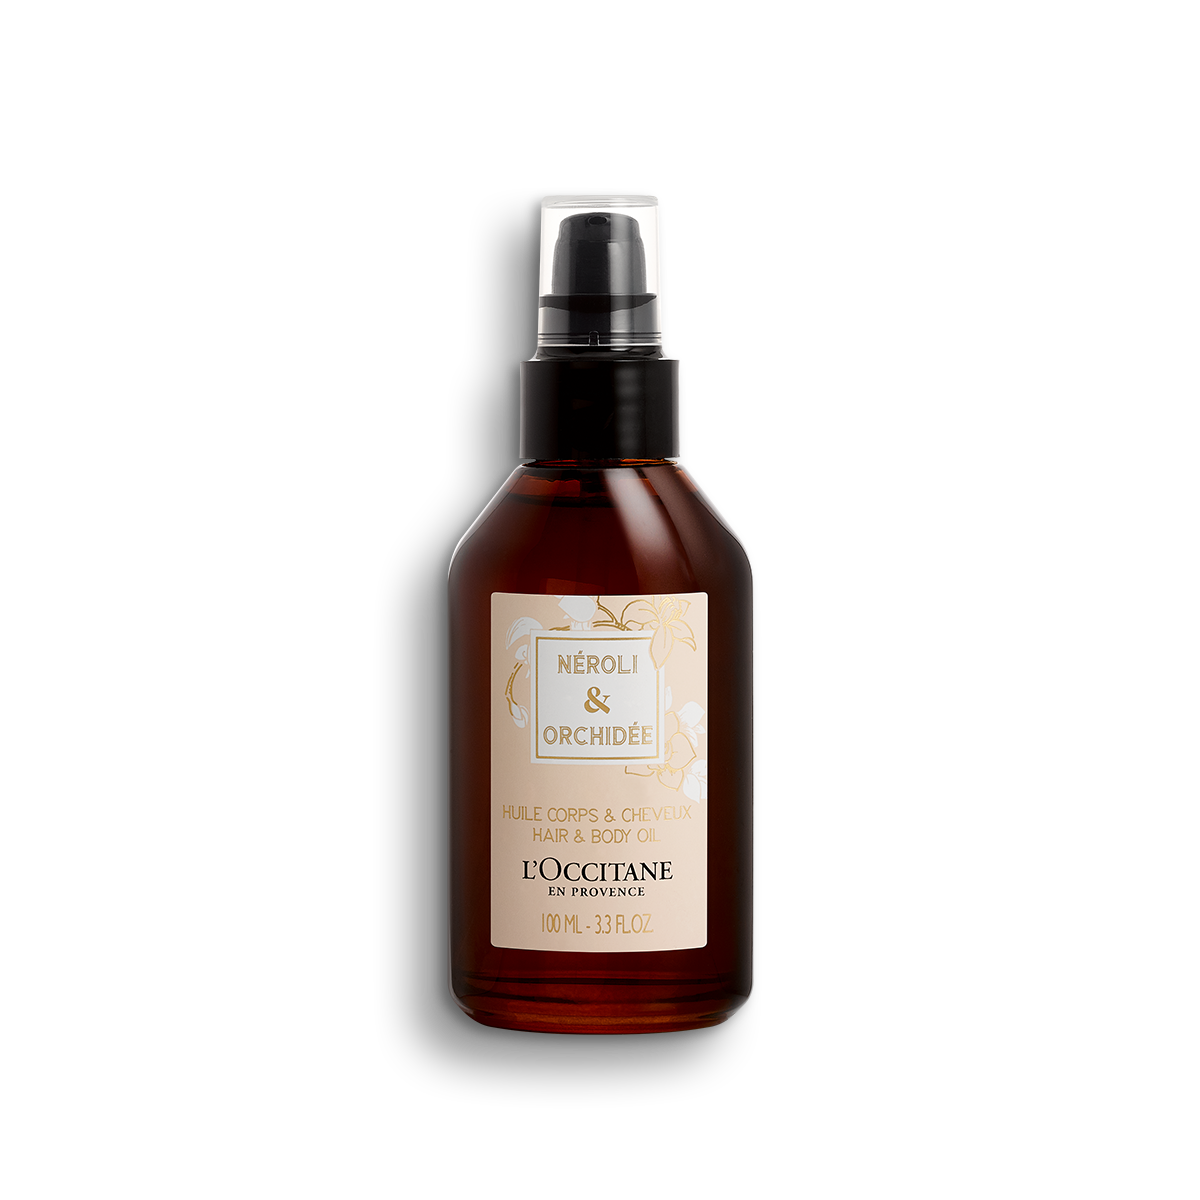 Neroli Orchidee Hair Body Oil L Occitane